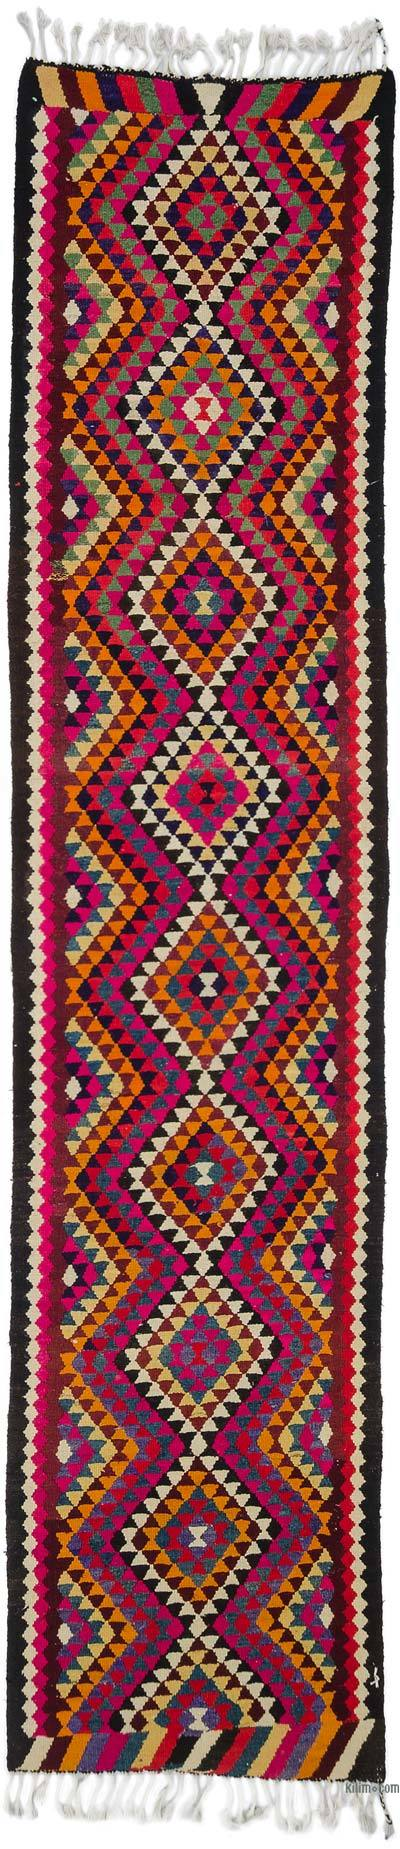 "Vintage Turkish Kilim Runner - 3' 1"" x 13' 7"" (37 in. x 163 in.)"